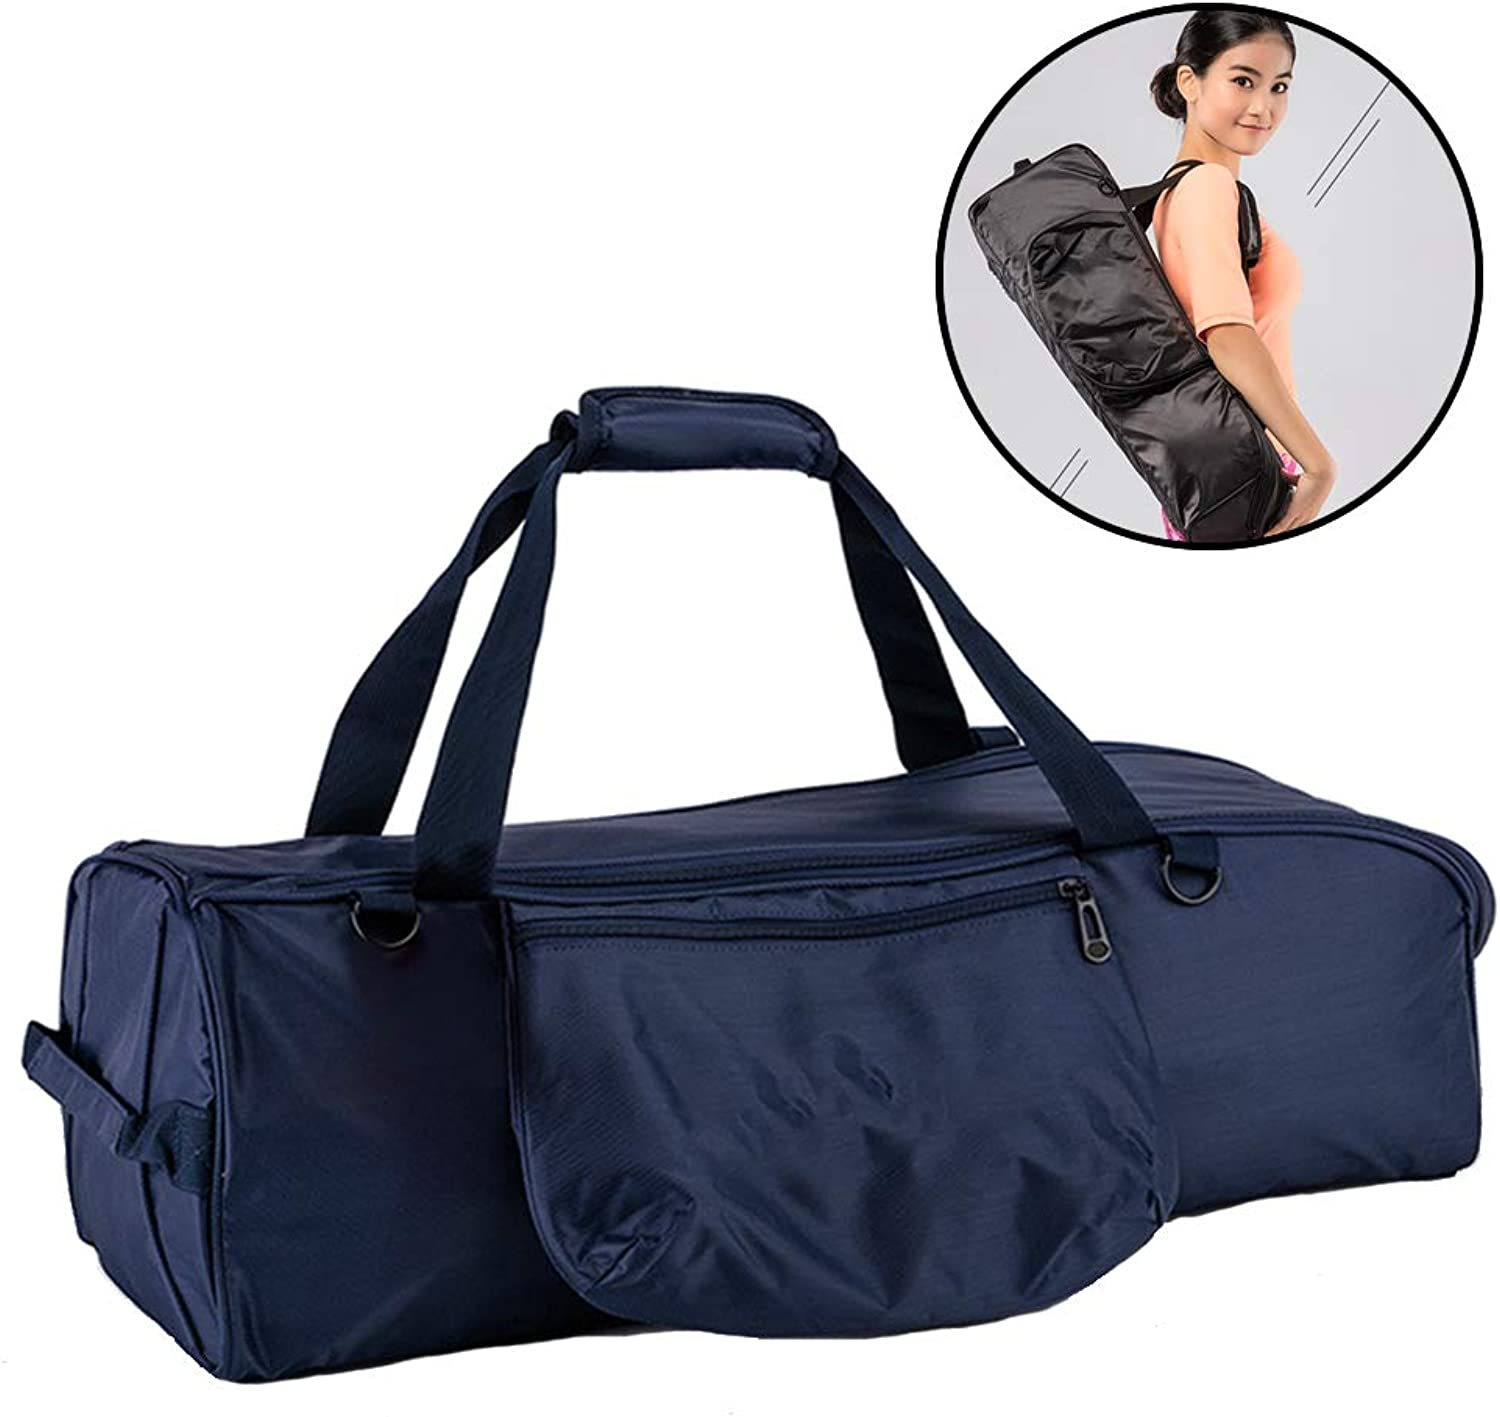 Yoga Mat Bag, Waterproof Sport Gym Carry Bag, Smooth Zippers, Large Functional Storage Pockets bluee